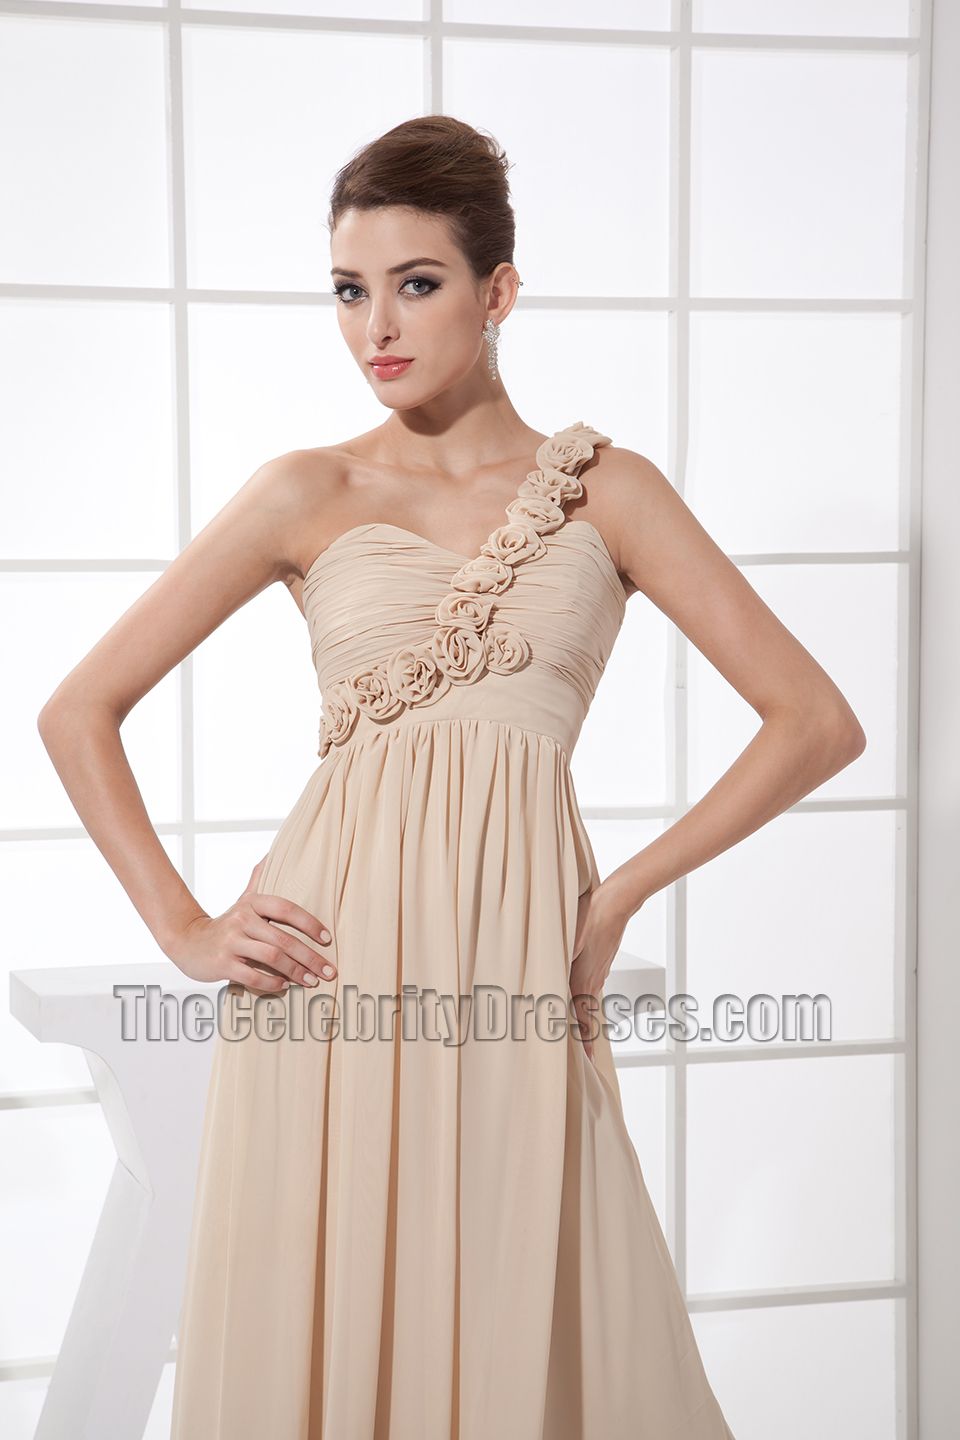 Romantic champagne one shoulder prom dress bridesmaid dresses romantic champagne one shoulder prom dress bridesmaid dresses thecelebritydresses ombrellifo Choice Image